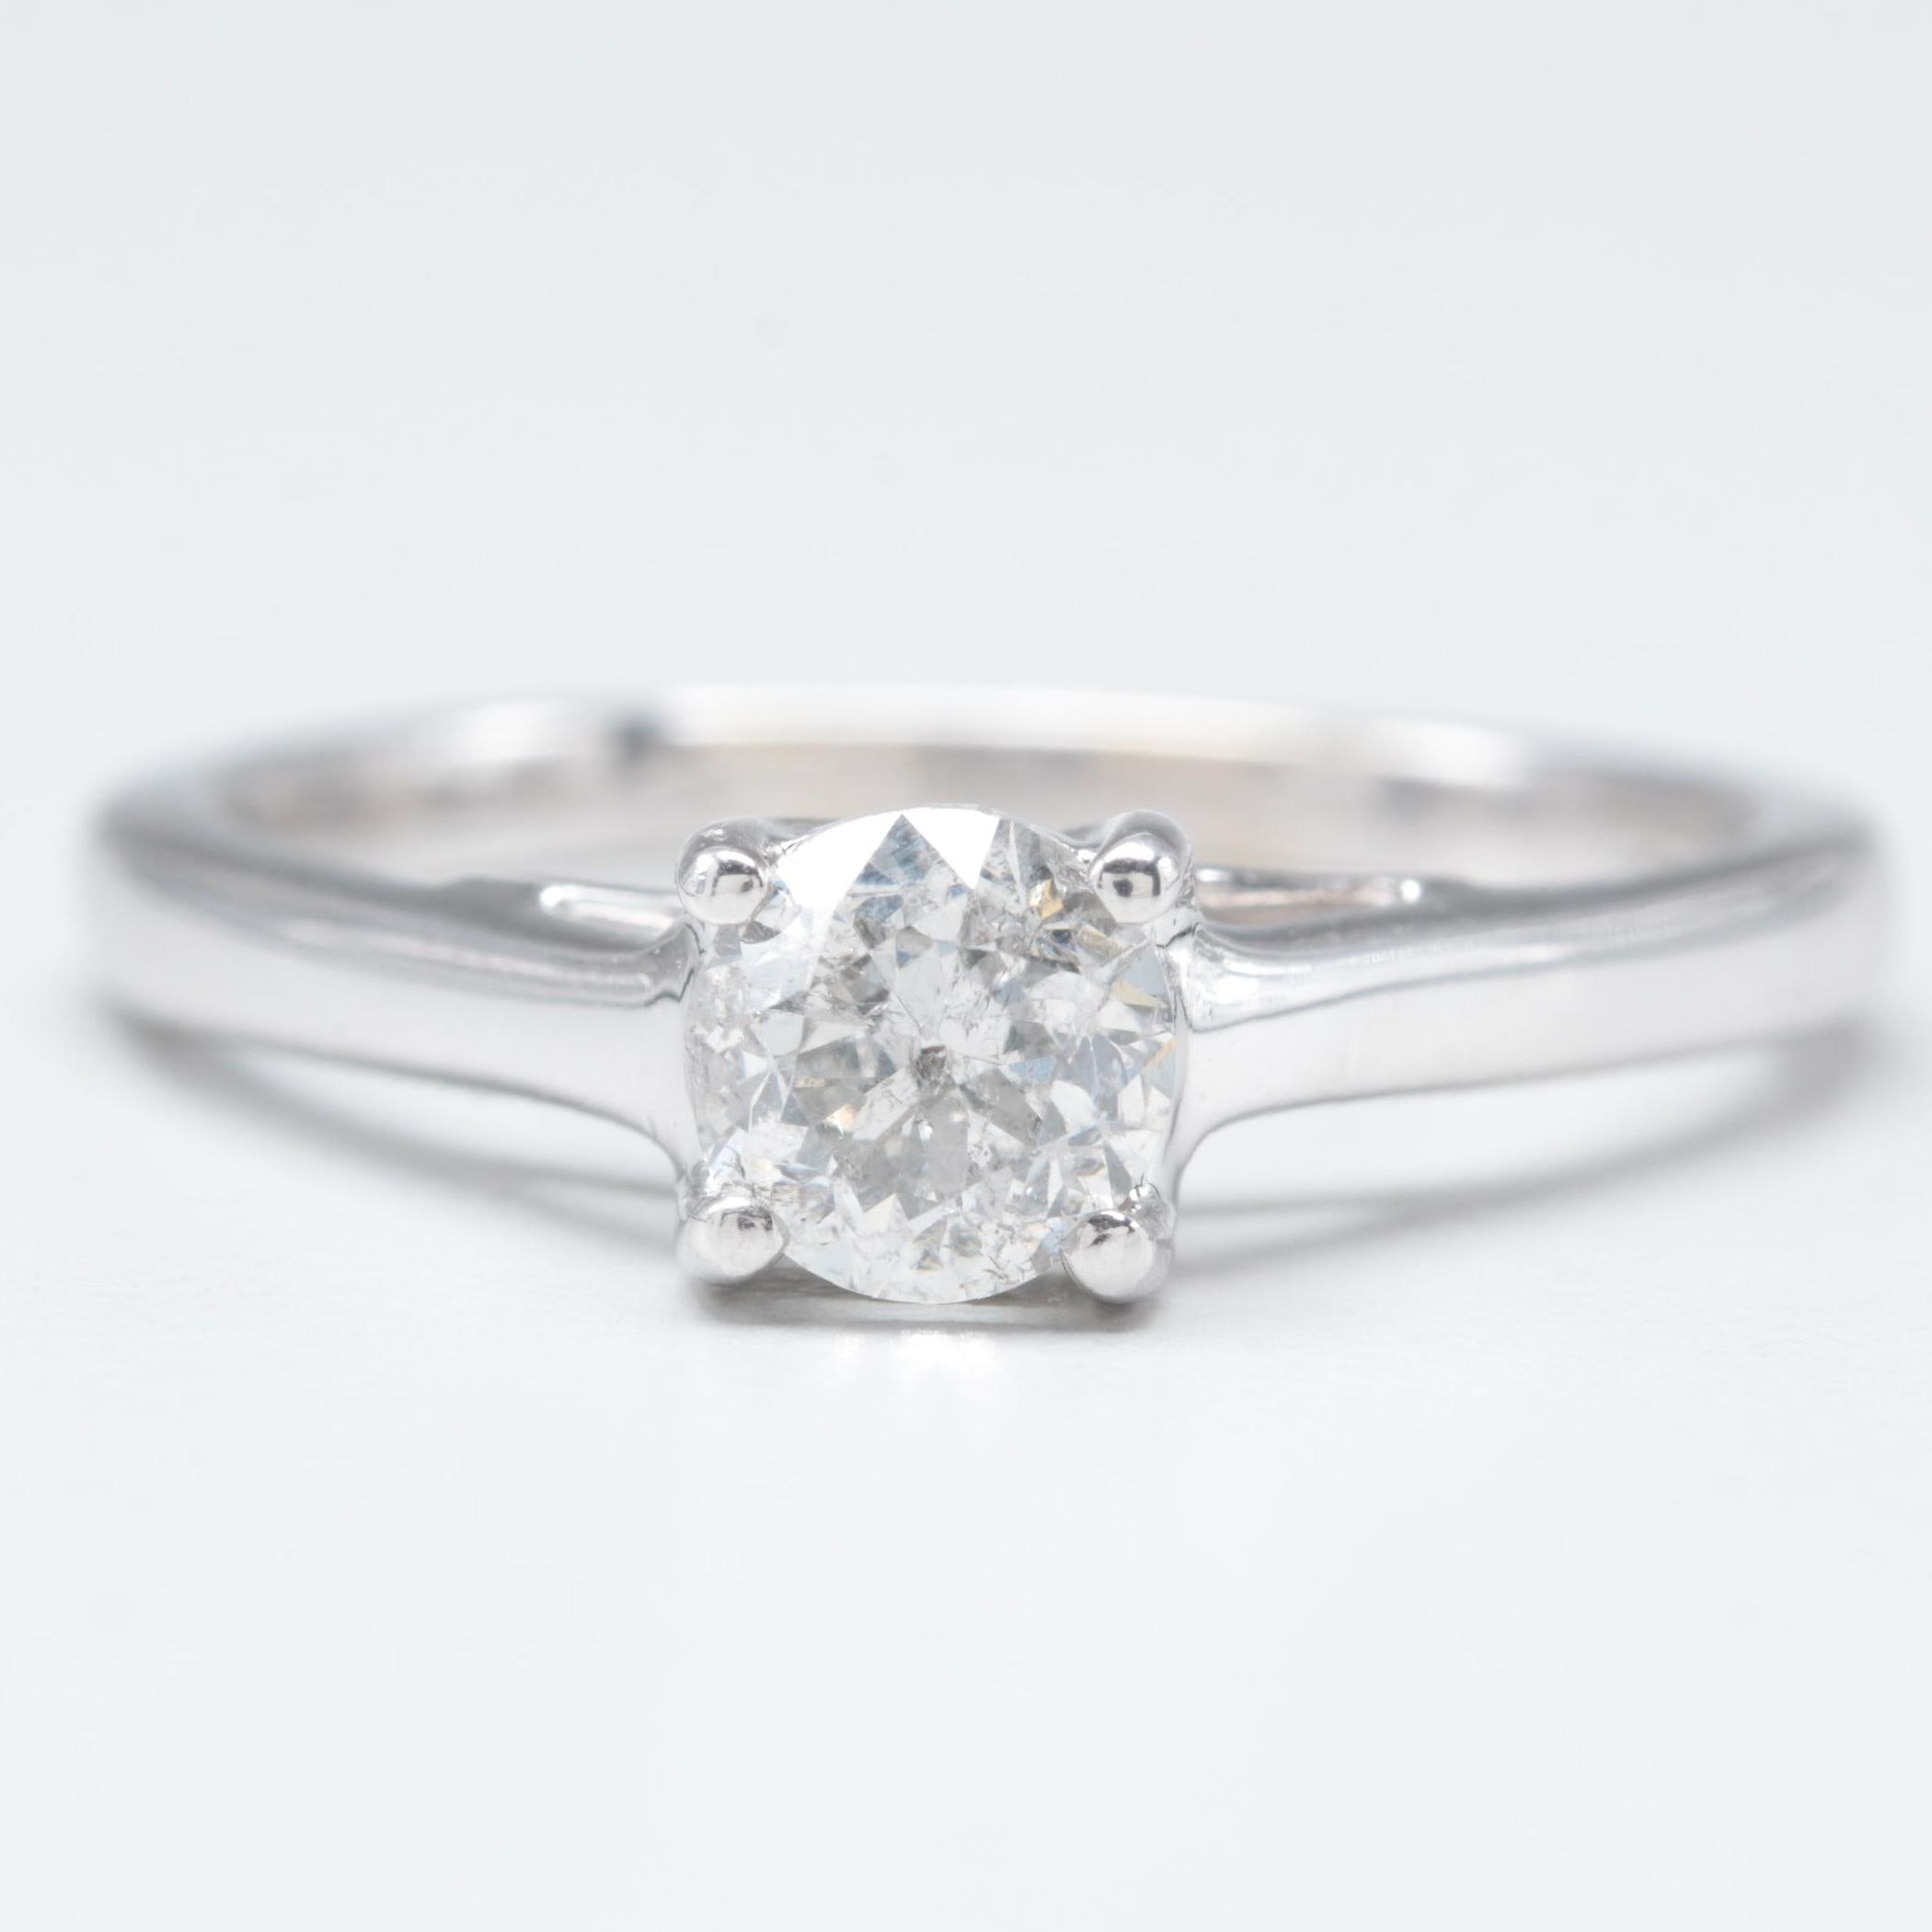 14K White Gold and Platinum Diamond Solitaire Tolkowsky Ring